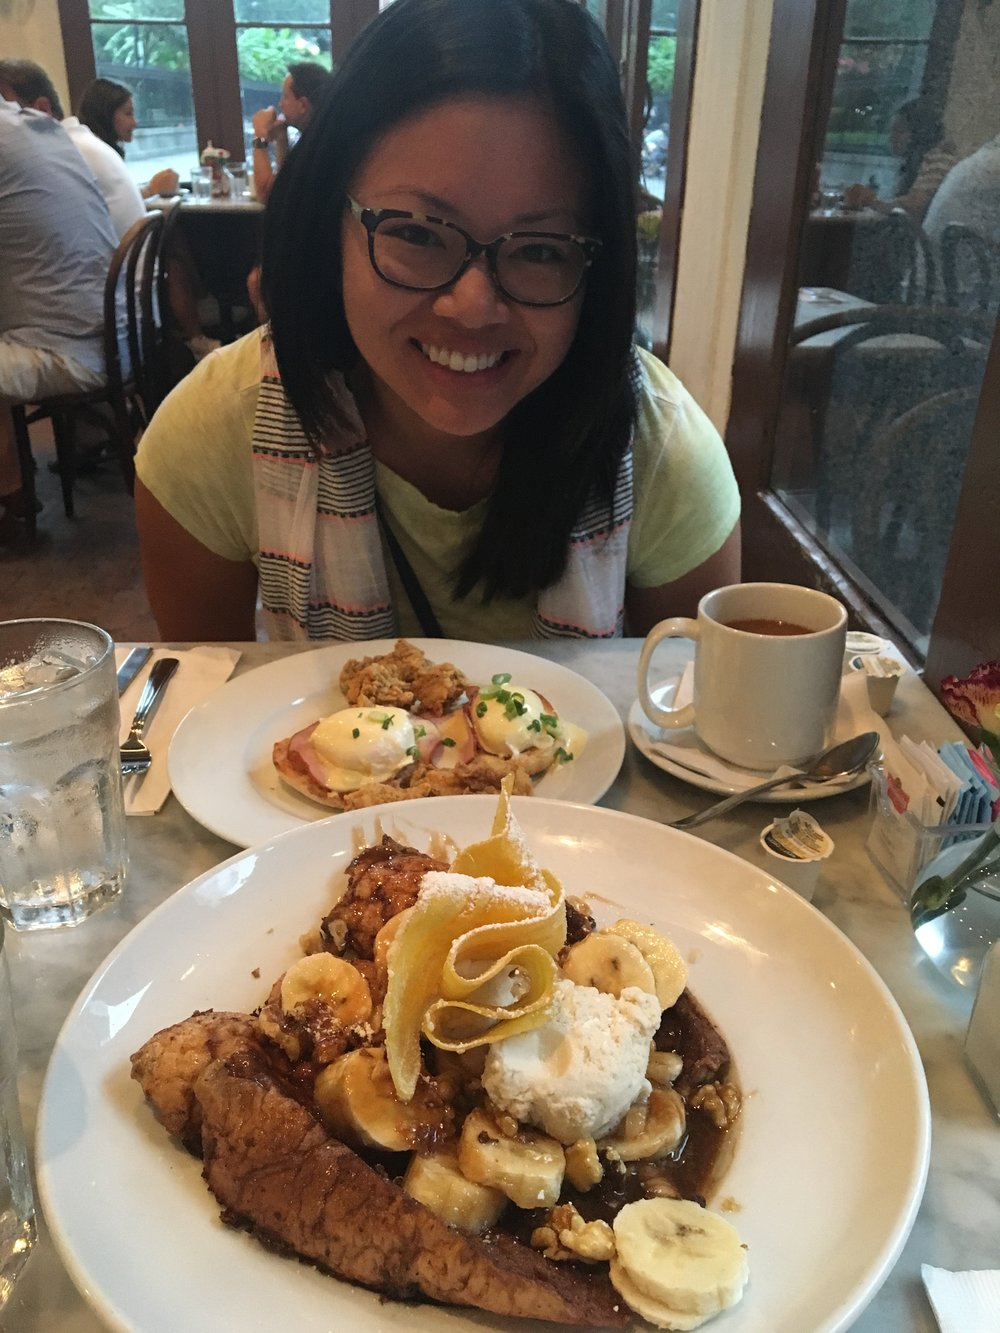 - Cornmeal-crusted oysters and let's face it- dessert in the form of French toast. Amazing.